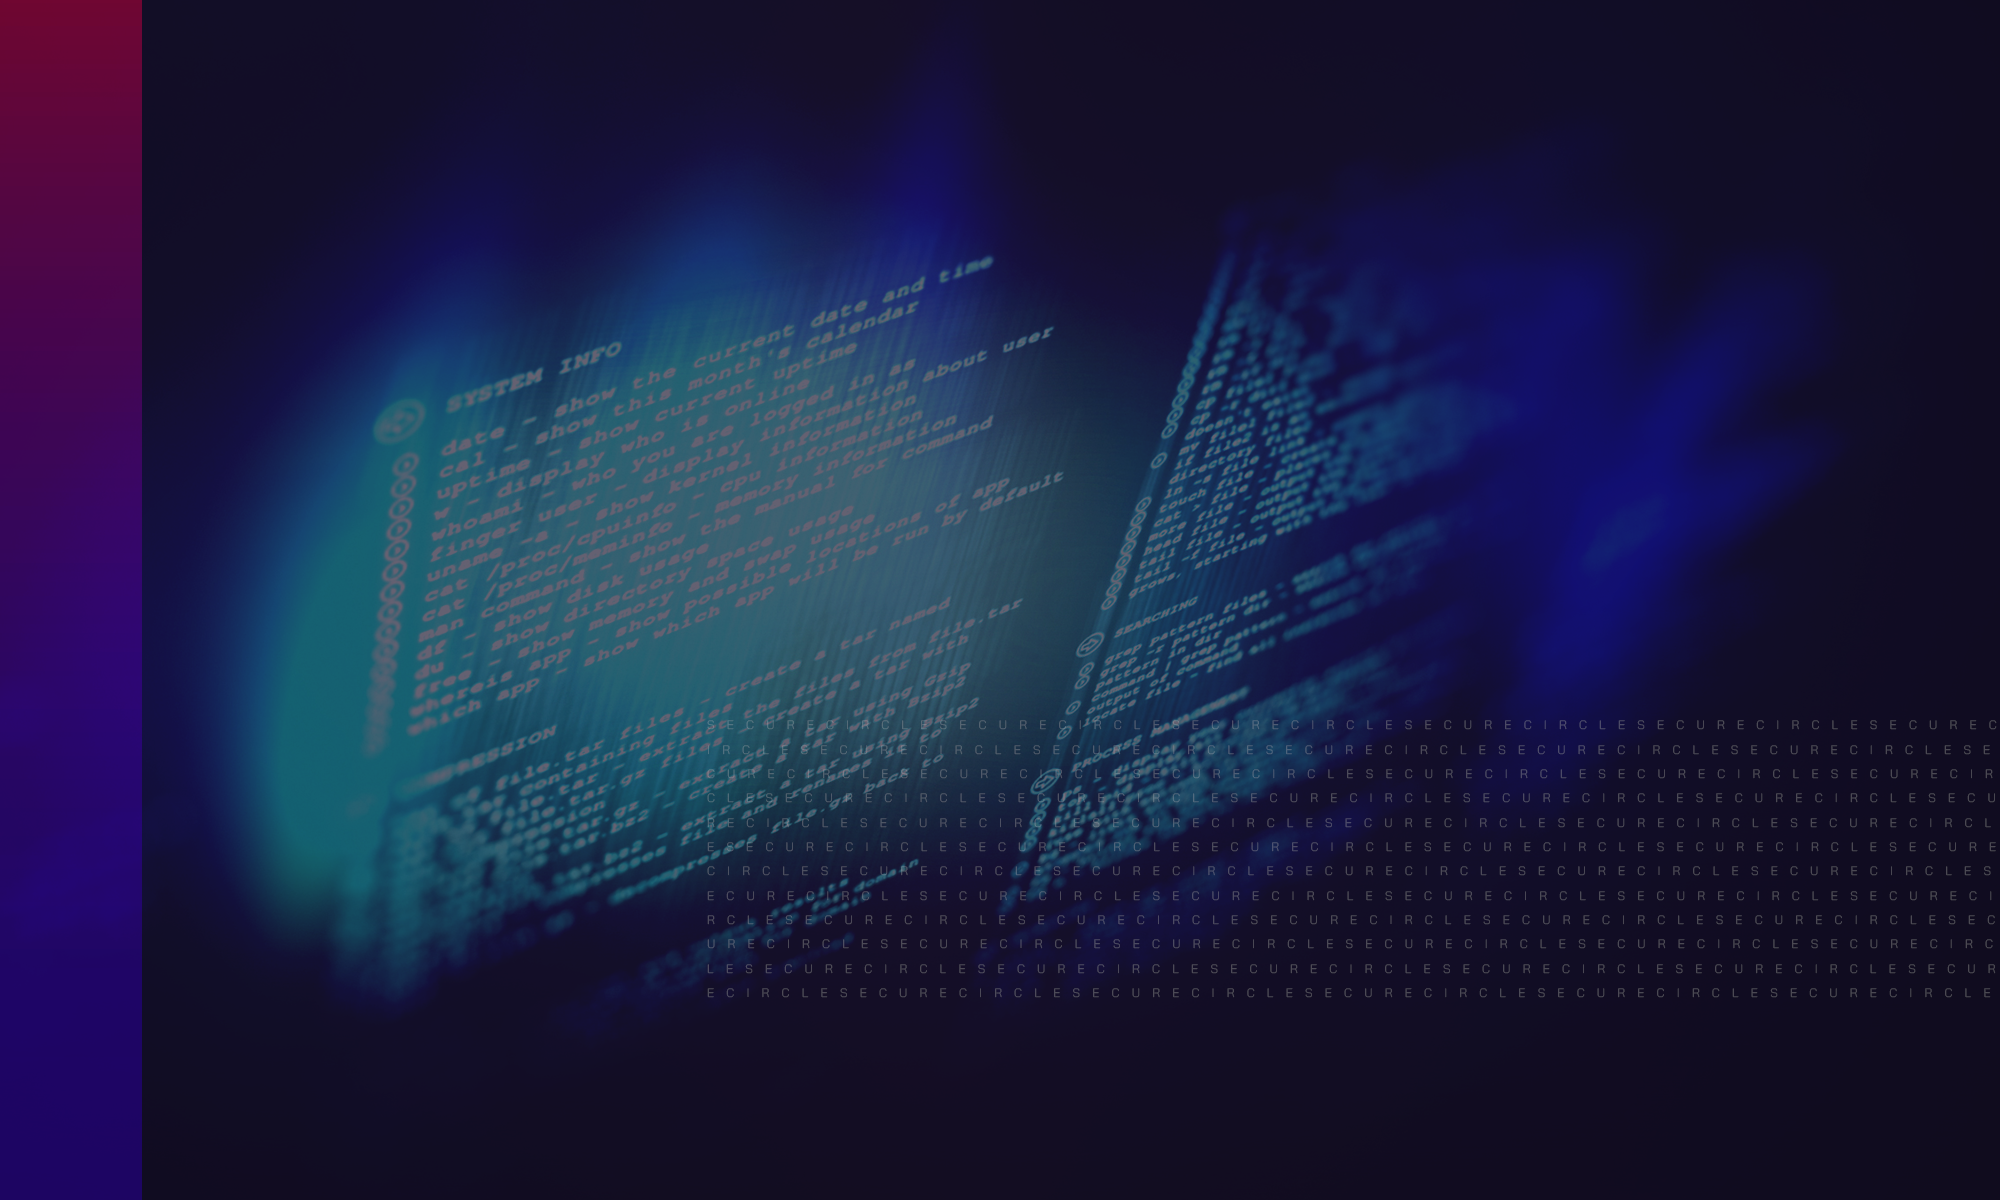 How to Prevent Source Code Modification & Leaks